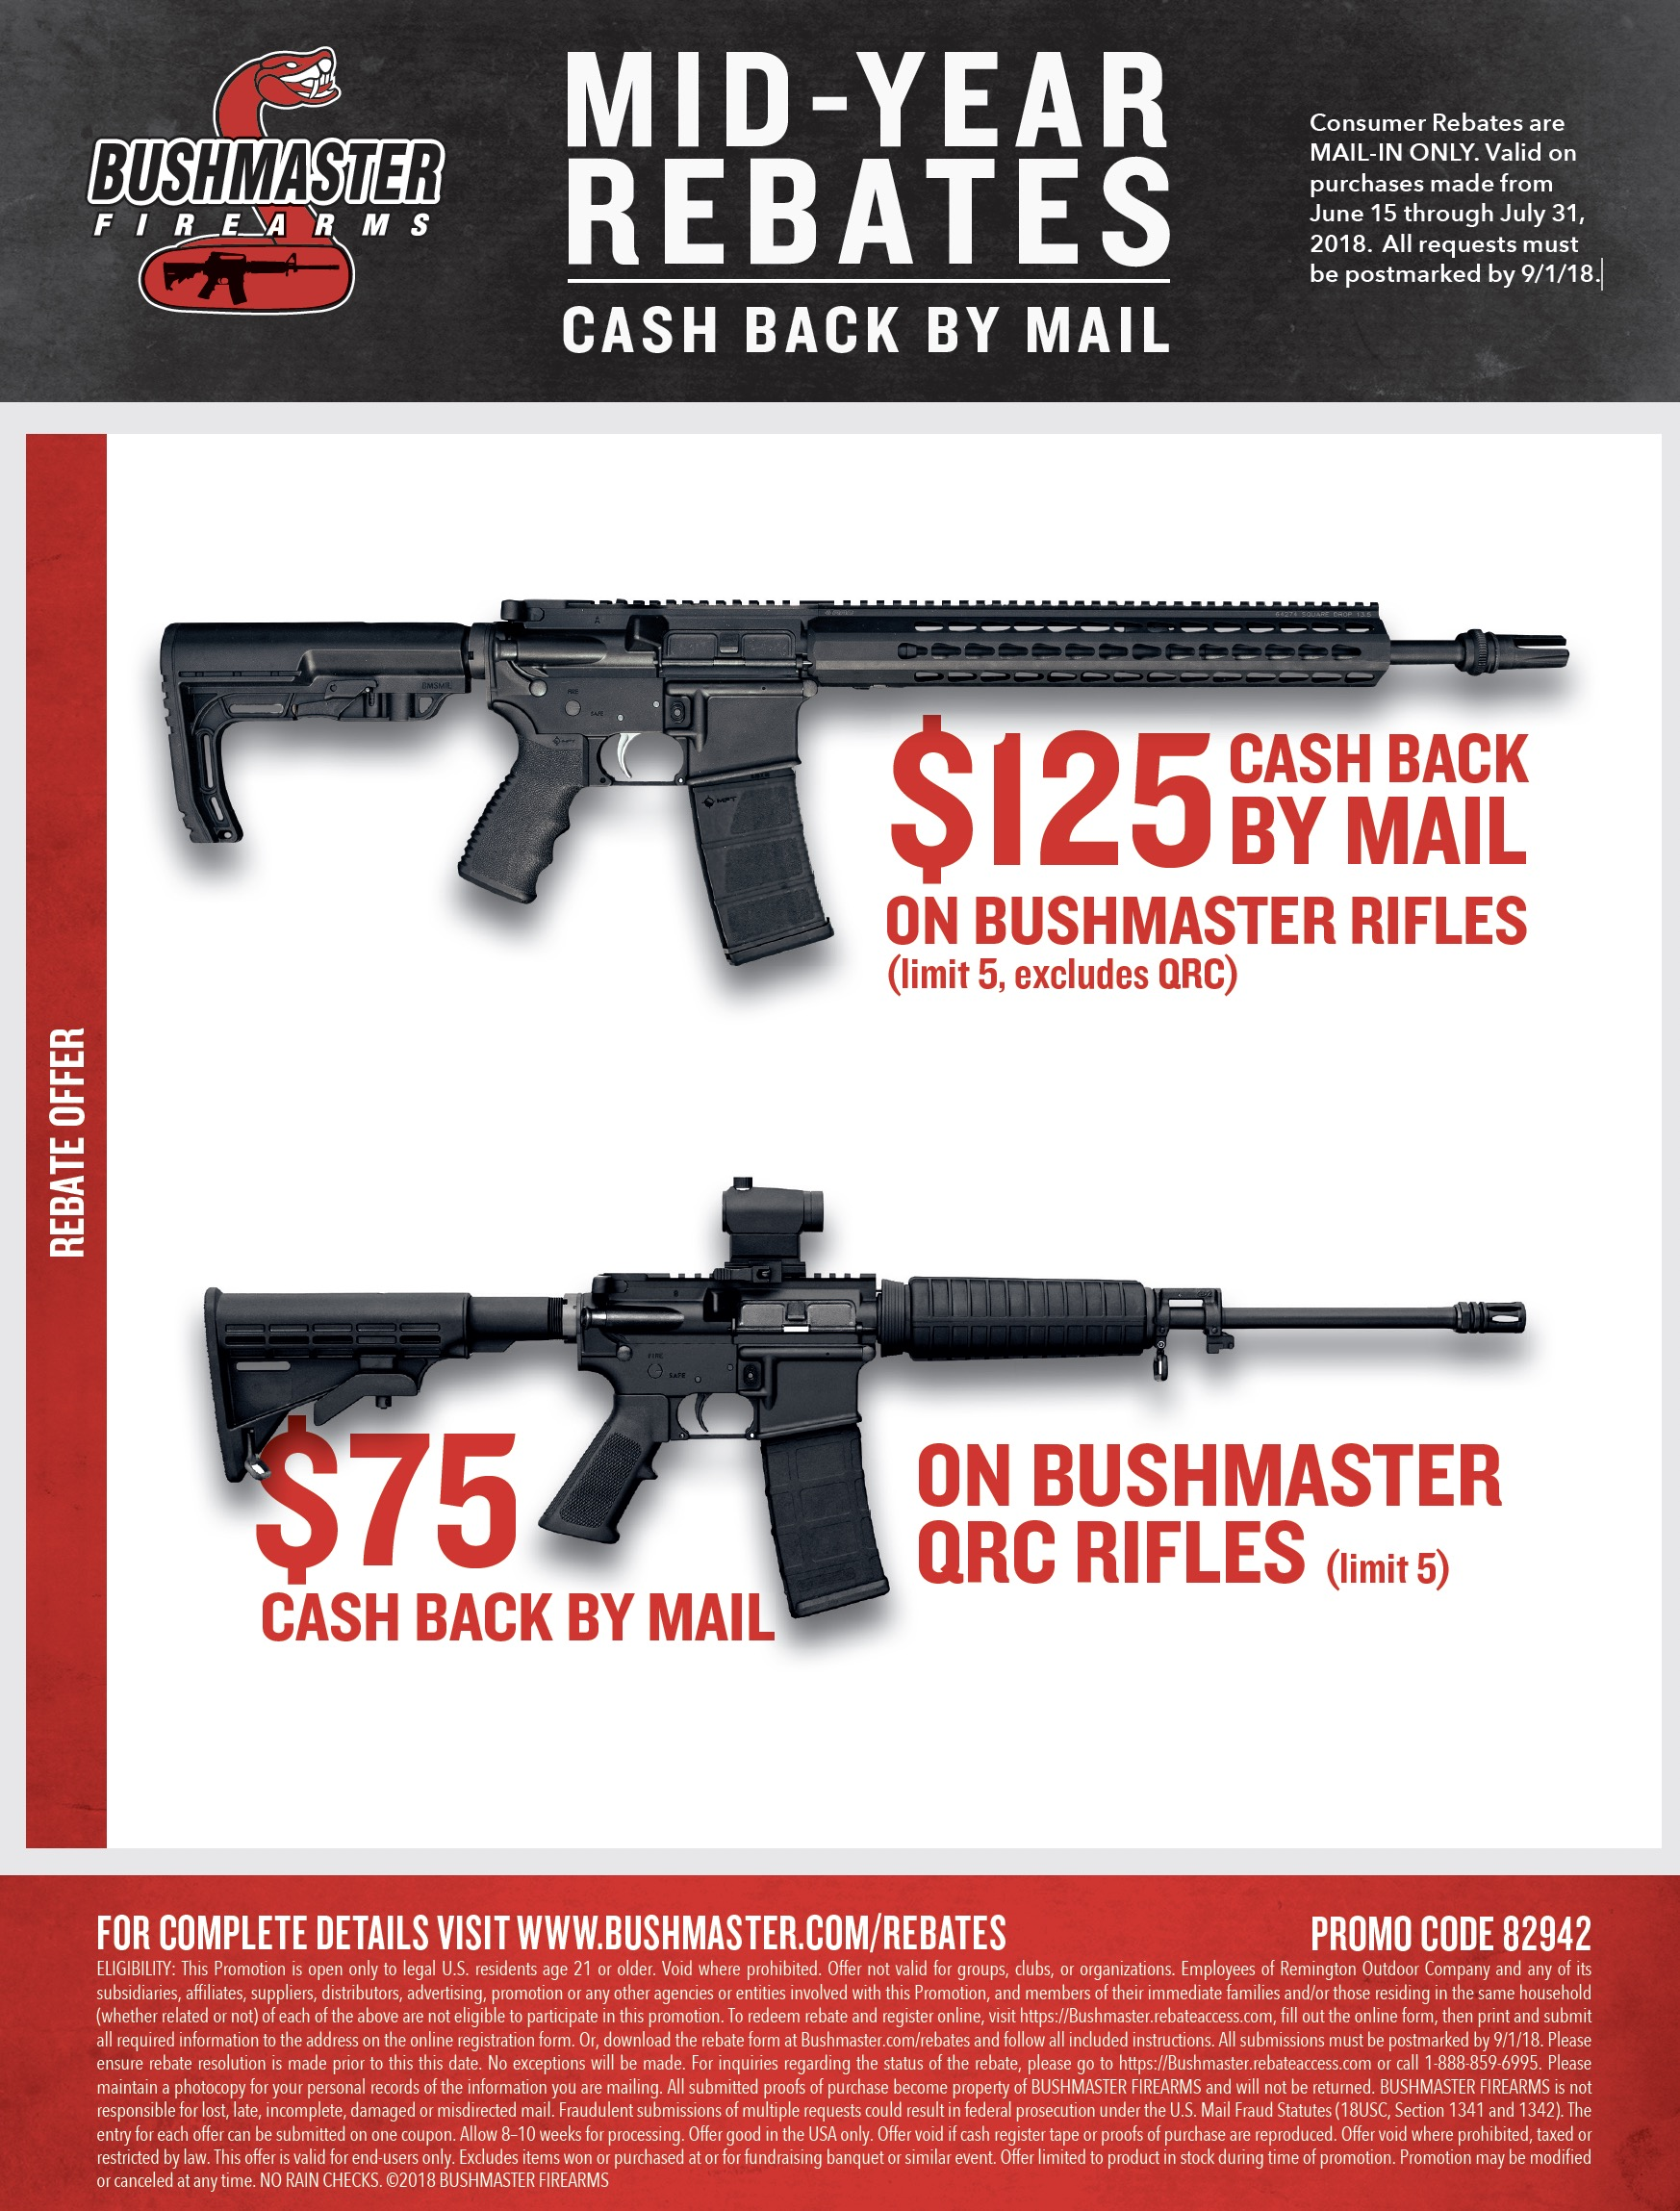 bushmaster-mid-year-rebates.jpg